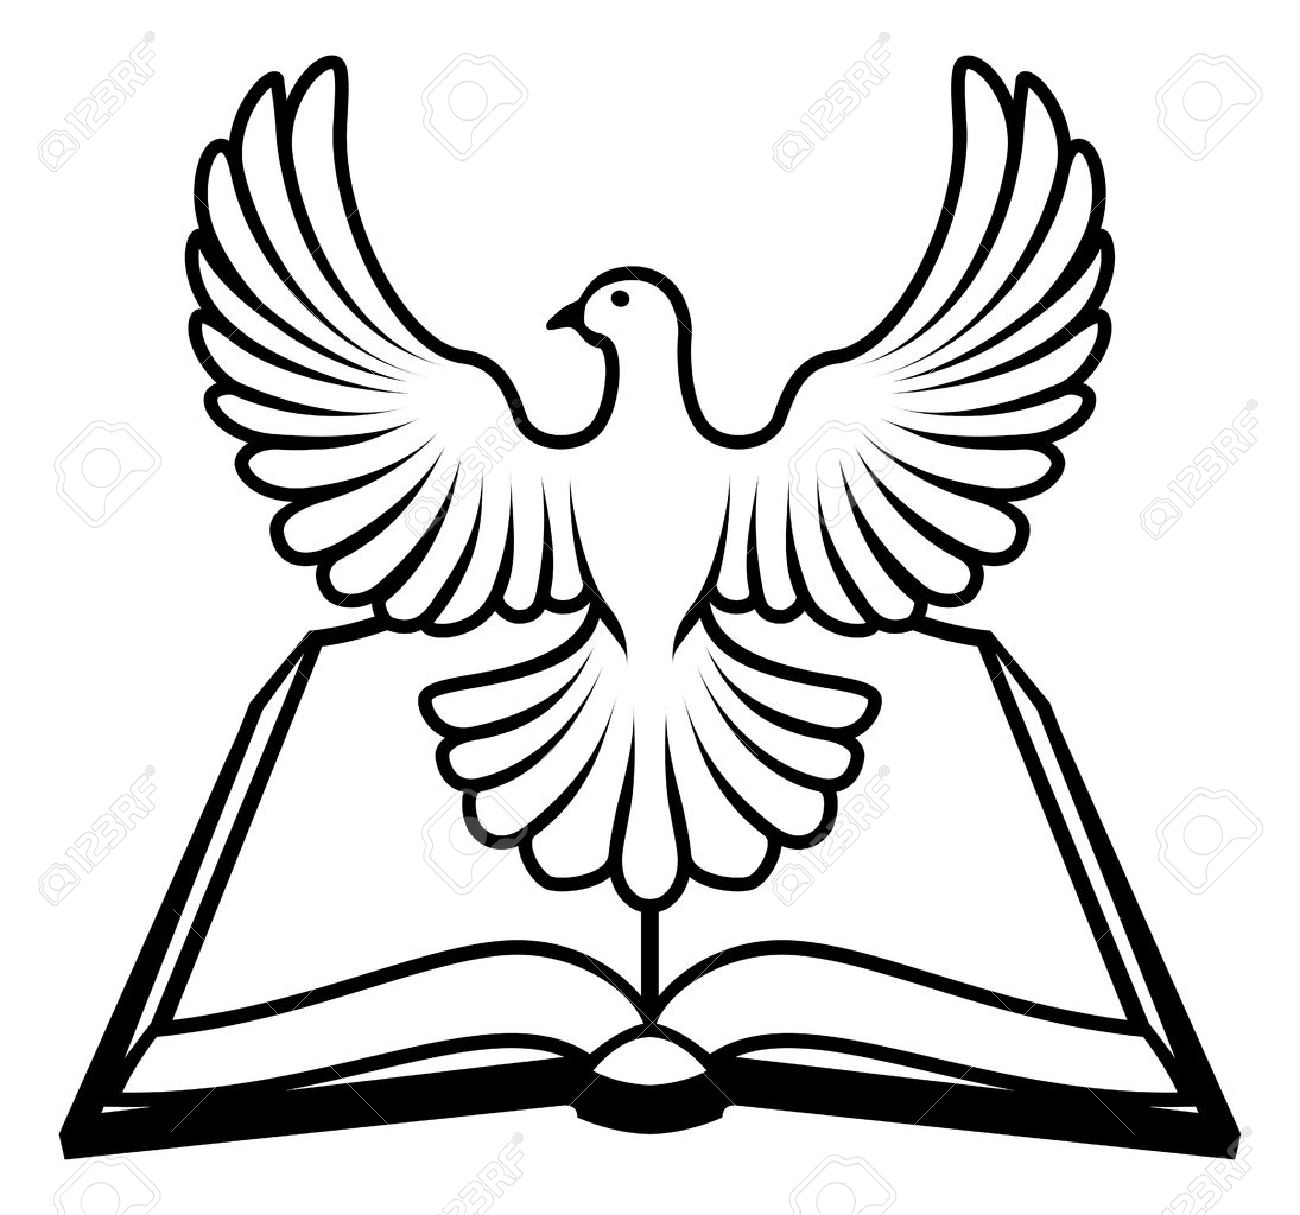 1300x1215 Christian Bible With The Holy Spirit In The Form Of A White Dove